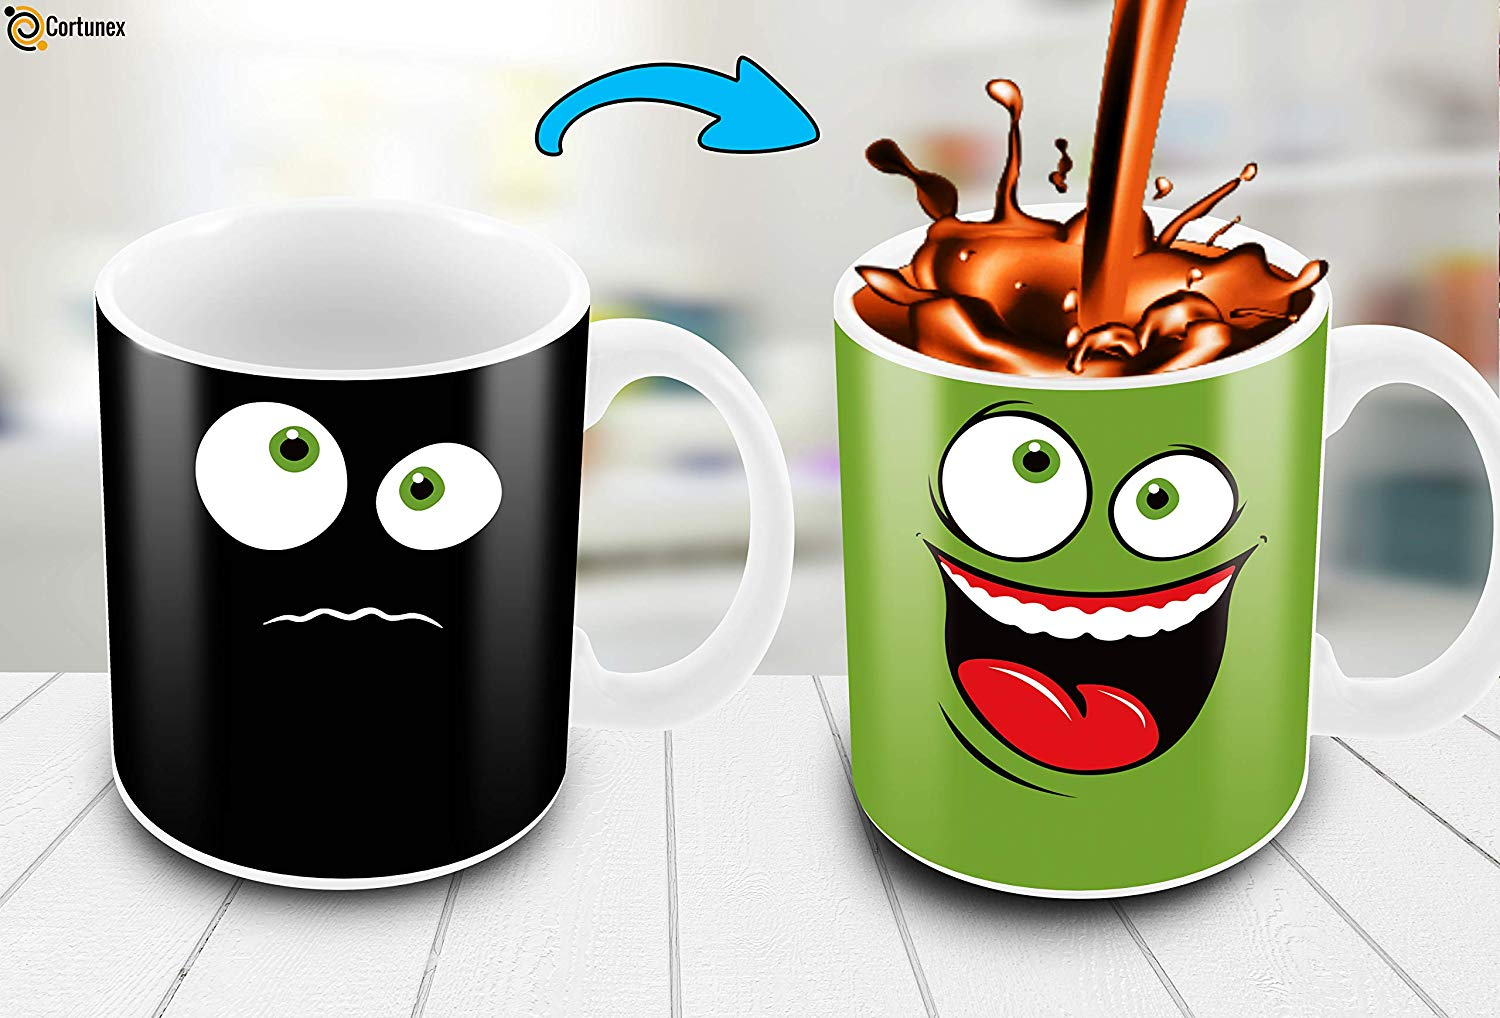 Heat Sensitive Color Changing Coffee Mug Funny Coffee Cup Green Happy Funny Face Design Funny Gift Idea B079FR15QX 3